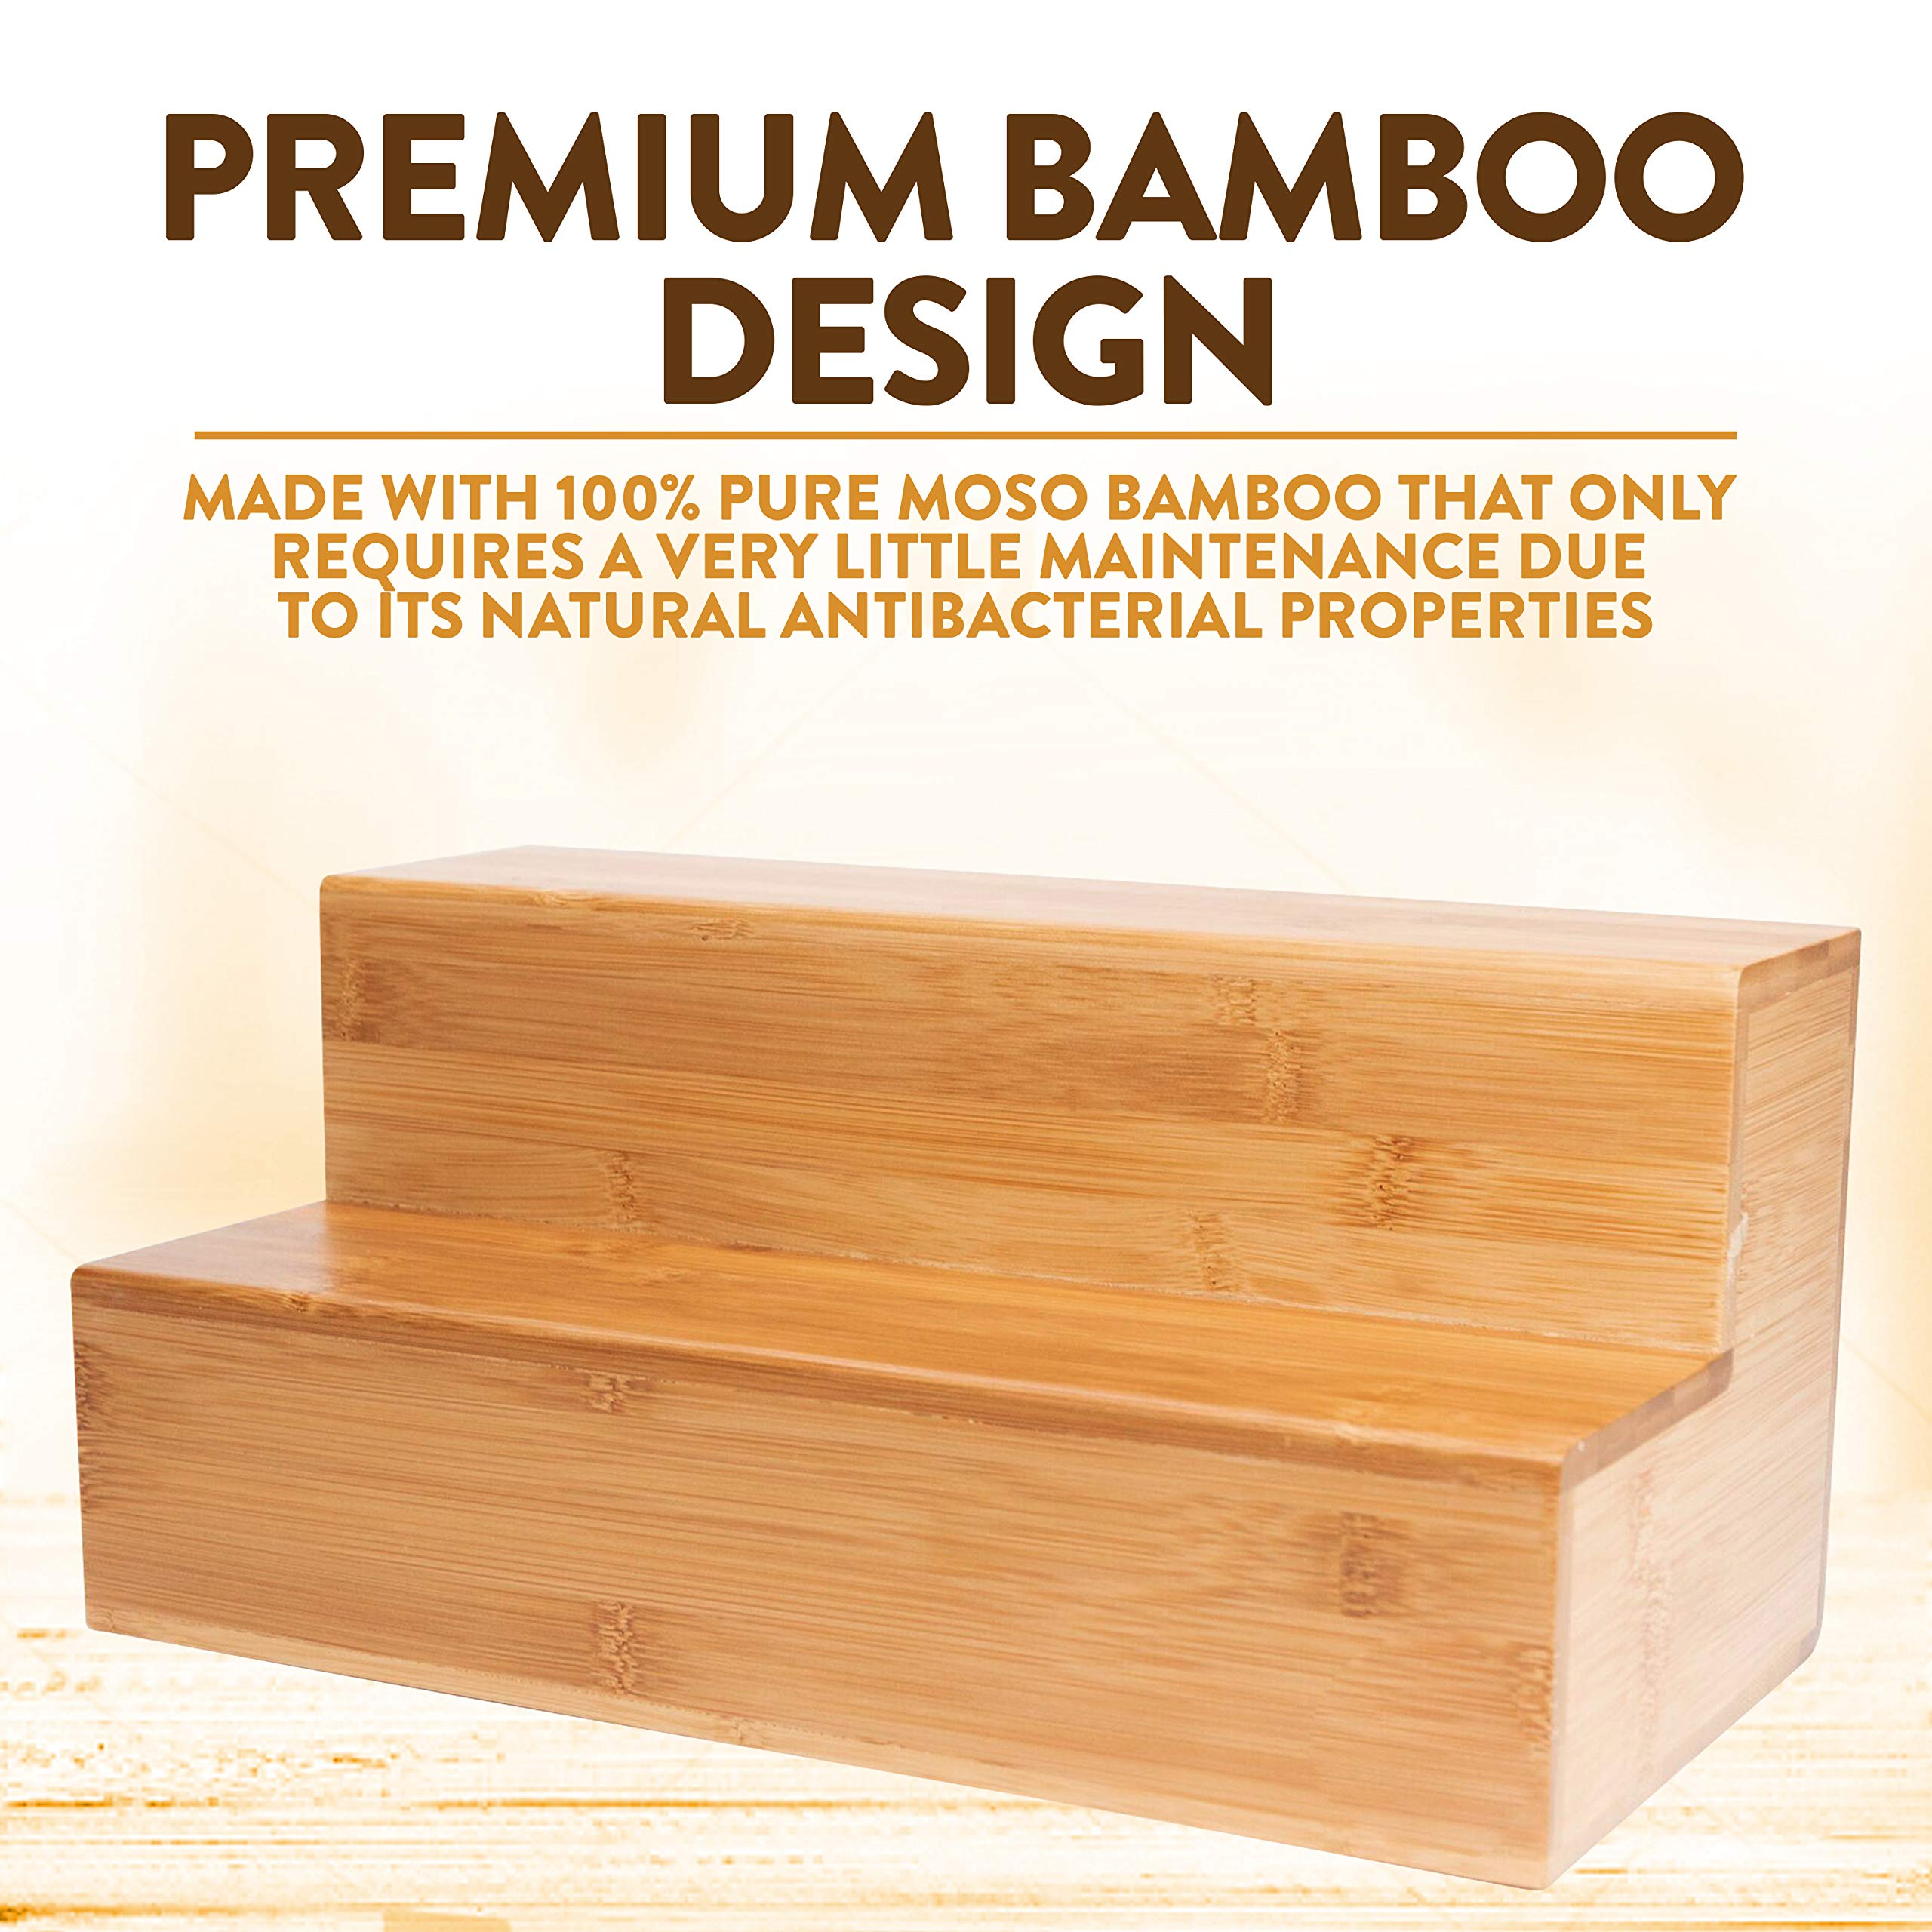 Coffee Tea Organizer Station - Bamboo Condiment and Accessories Caddy Organizer | for Kitchen and Office Organization by Bambüsi (Image #9)